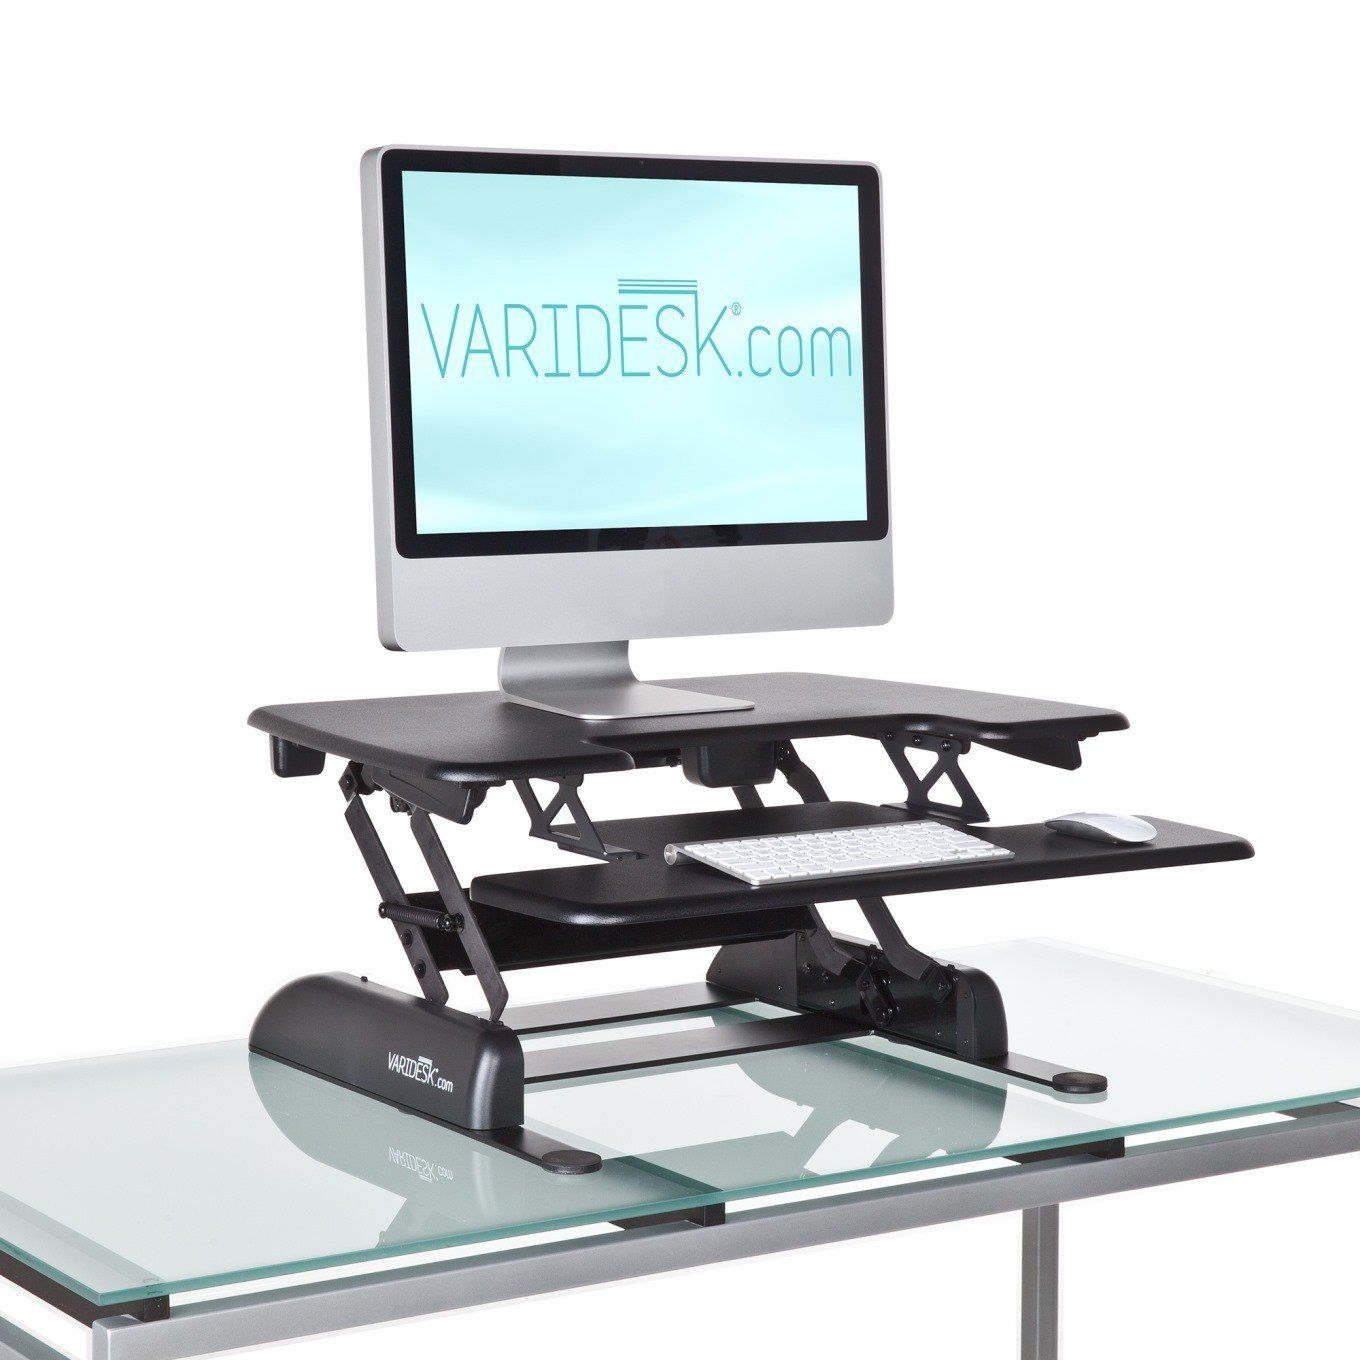 varidesk-single-plus-mid